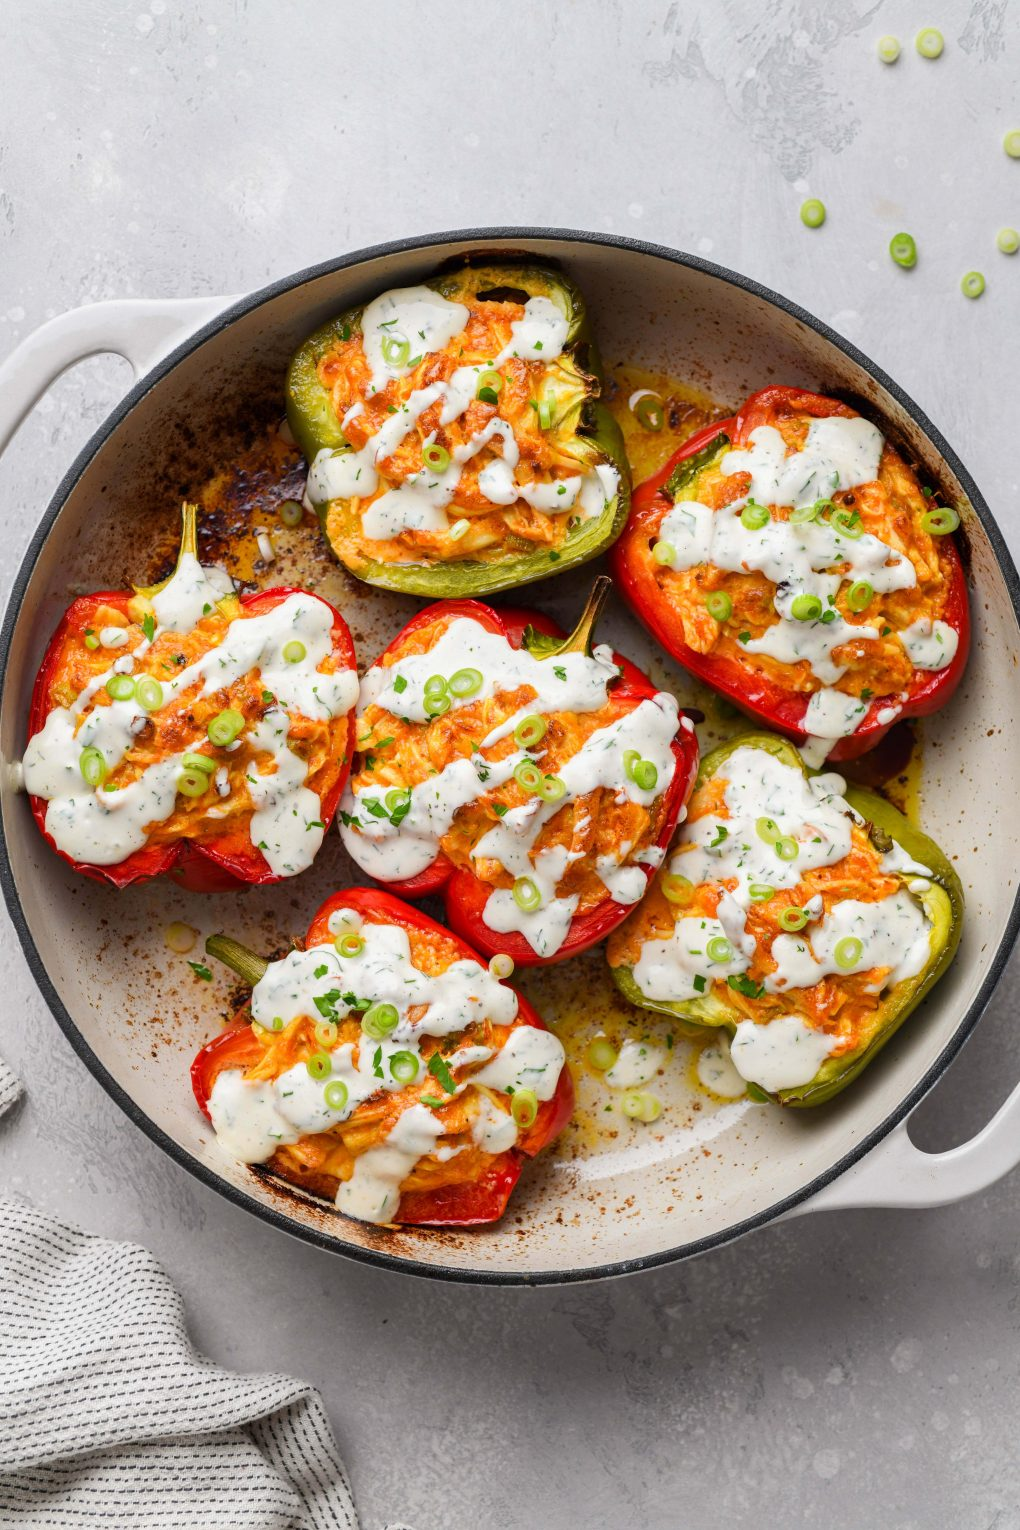 Overhead shot of colorful buffalo chicken stuffed bell peppers in an enameled cast iron skillet. Drizzled with dairy free ranch and topped with fresh herbs and thinly sliced green onion.